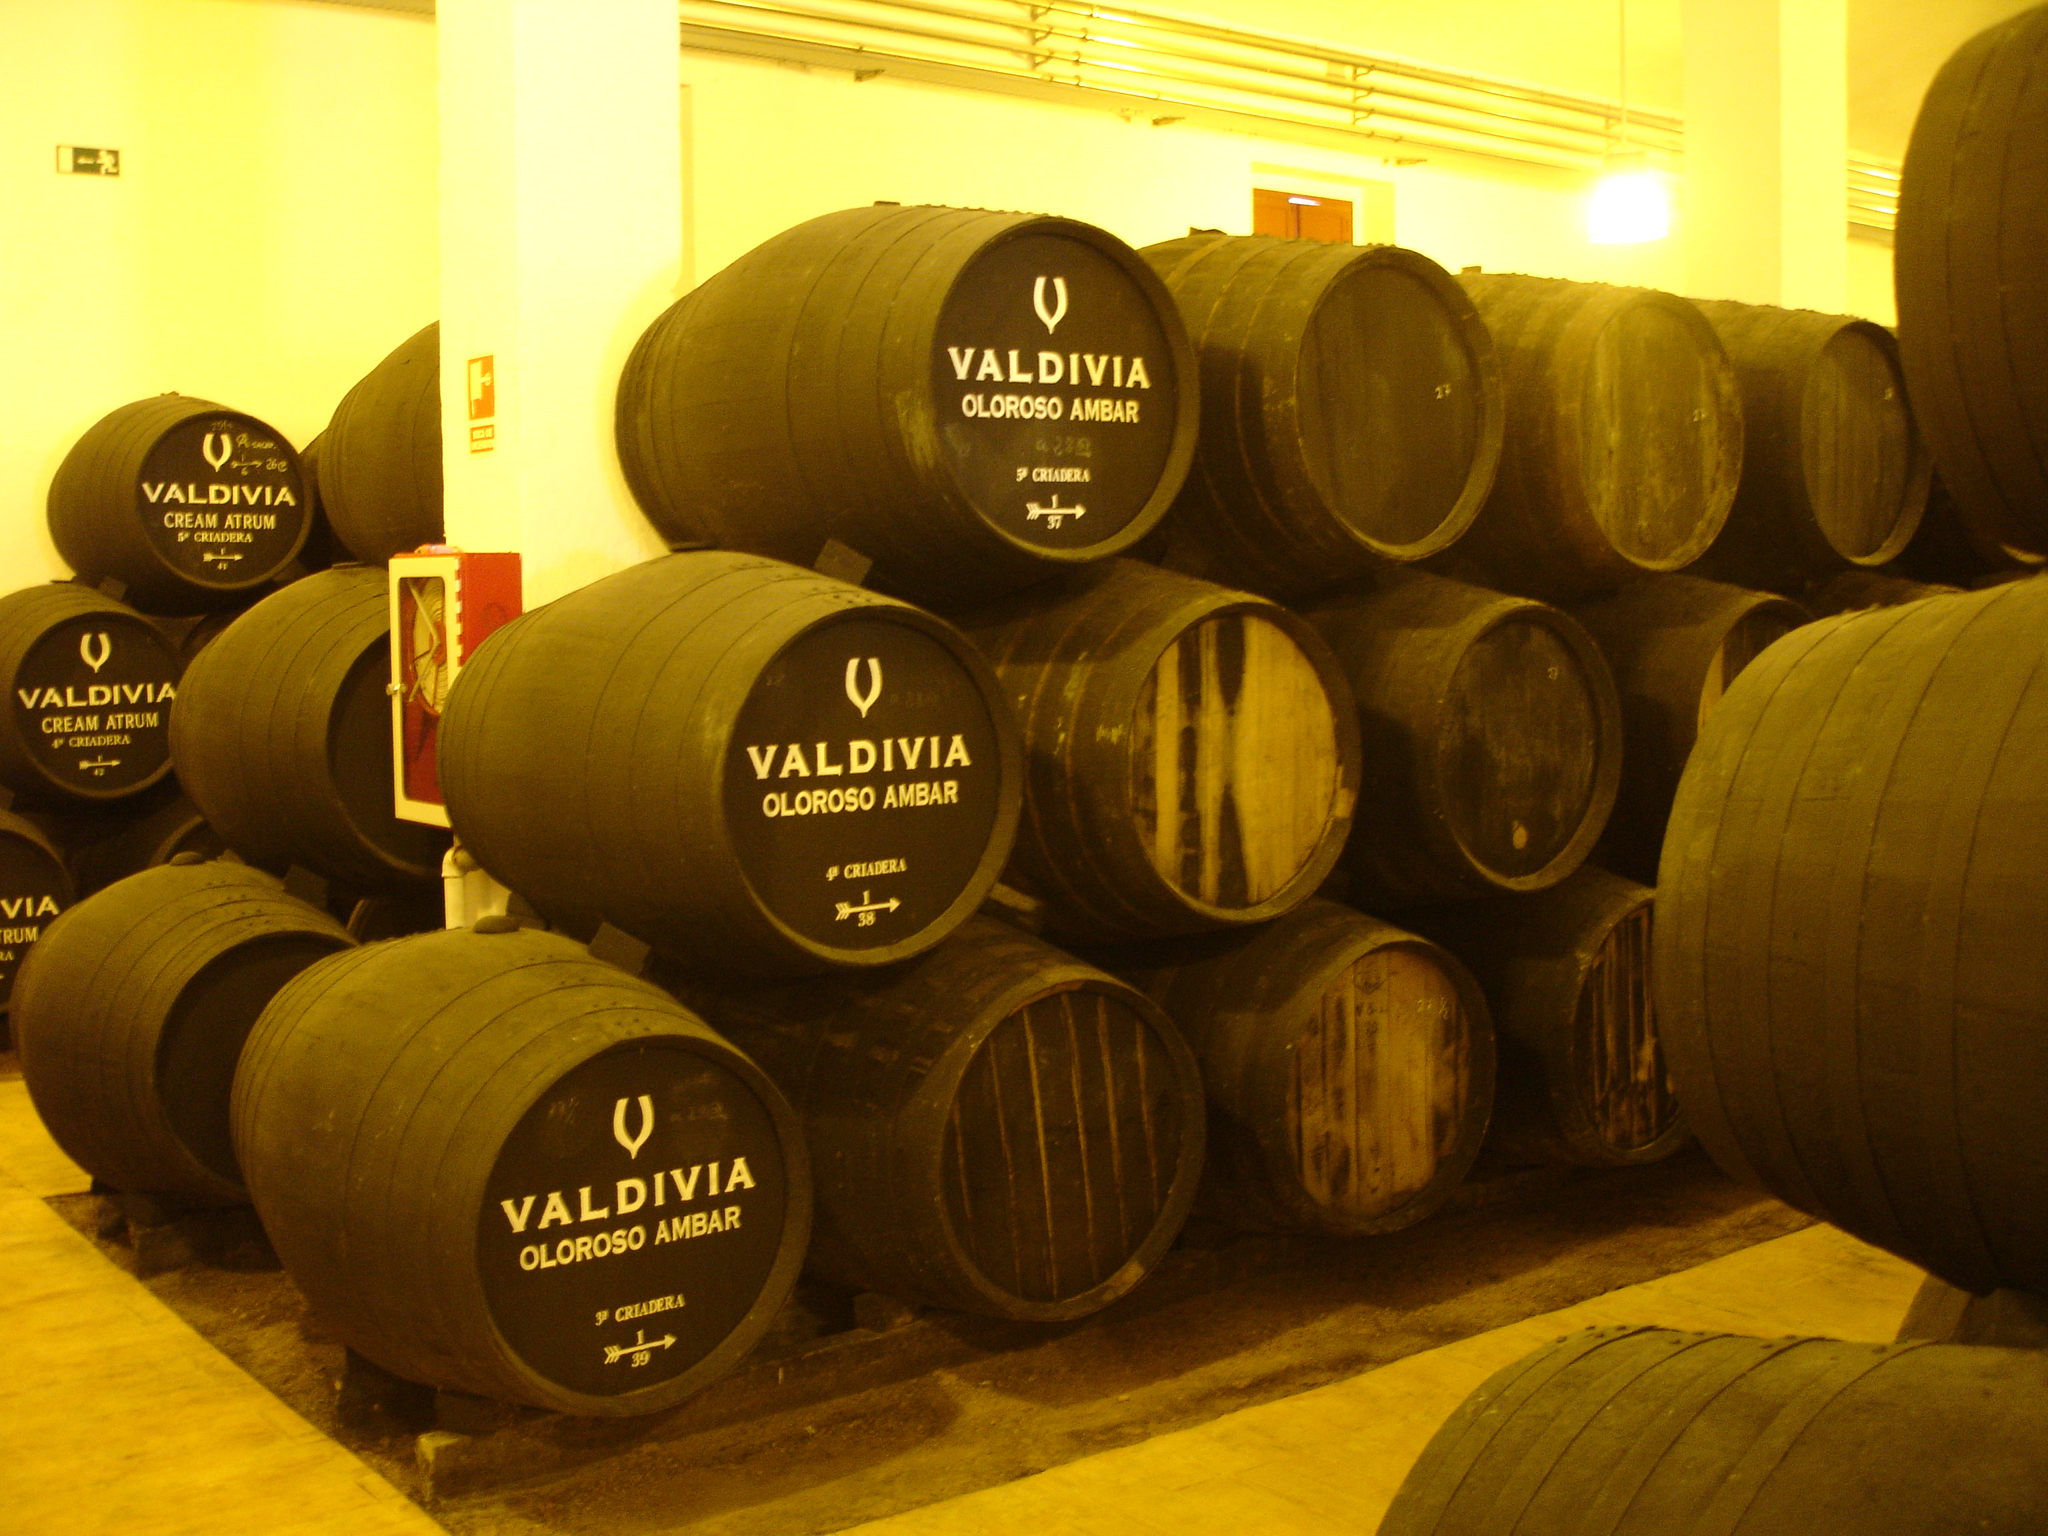 https://upload.wikimedia.org/wikipedia/commons/4/45/ValdiviaJerez55.jpg